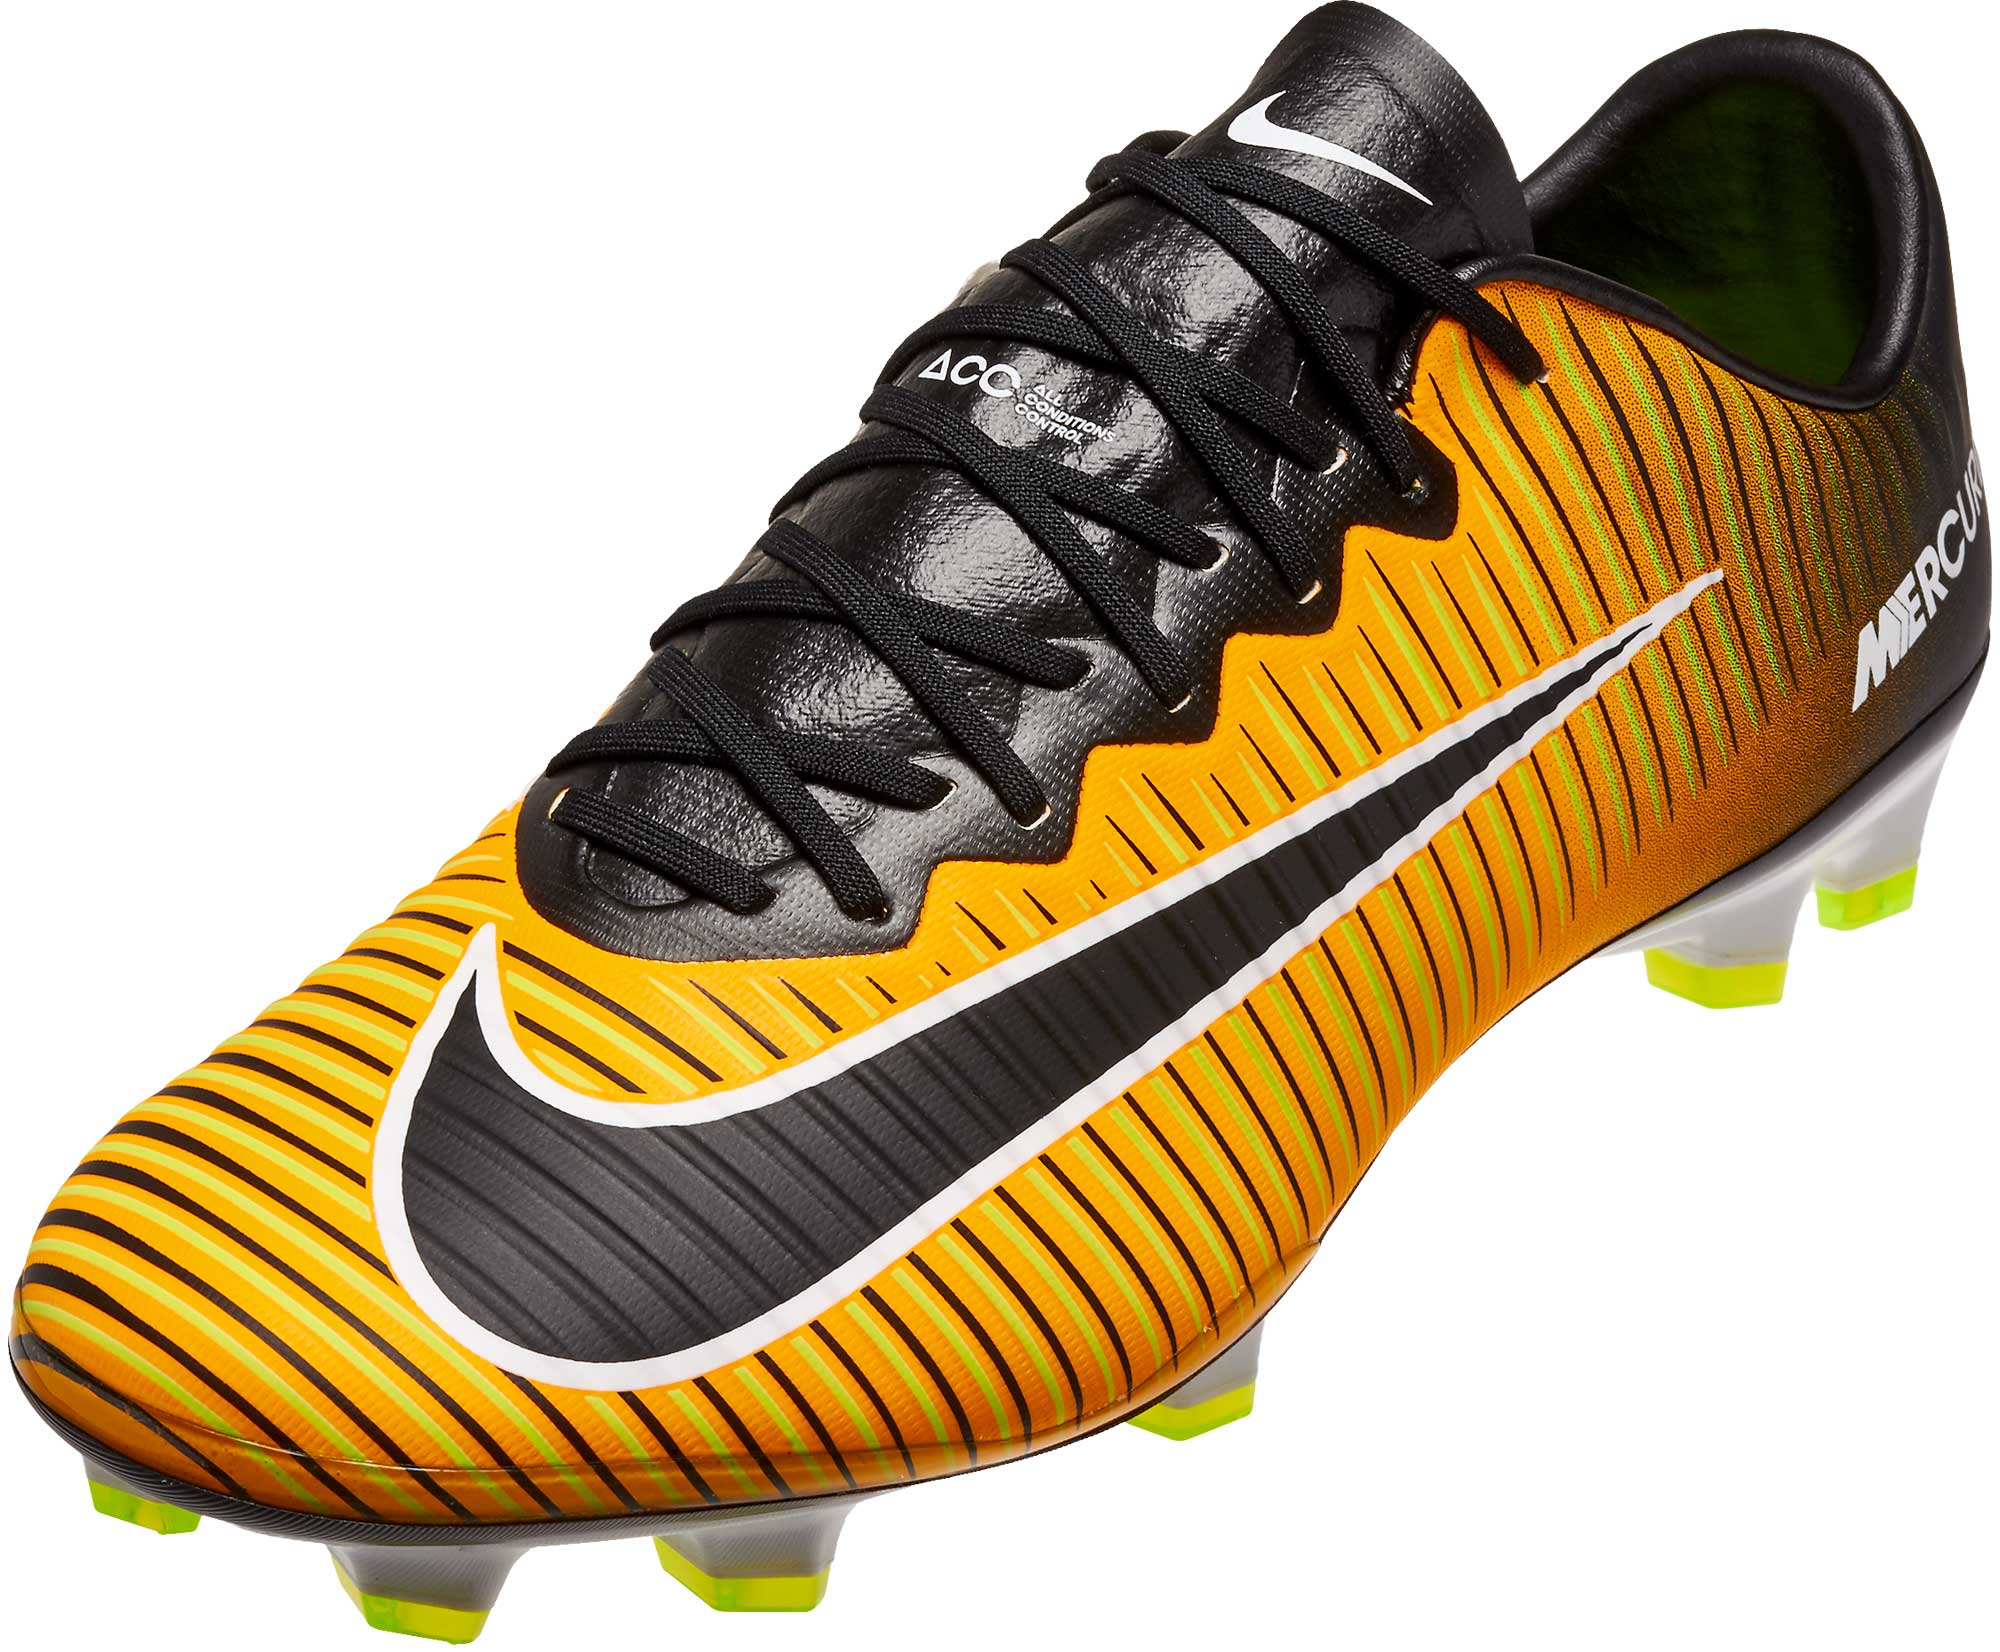 reputable site 5dc72 0b8b0 Nike Mercurial Vapor XI FG – Laser Orange/Black